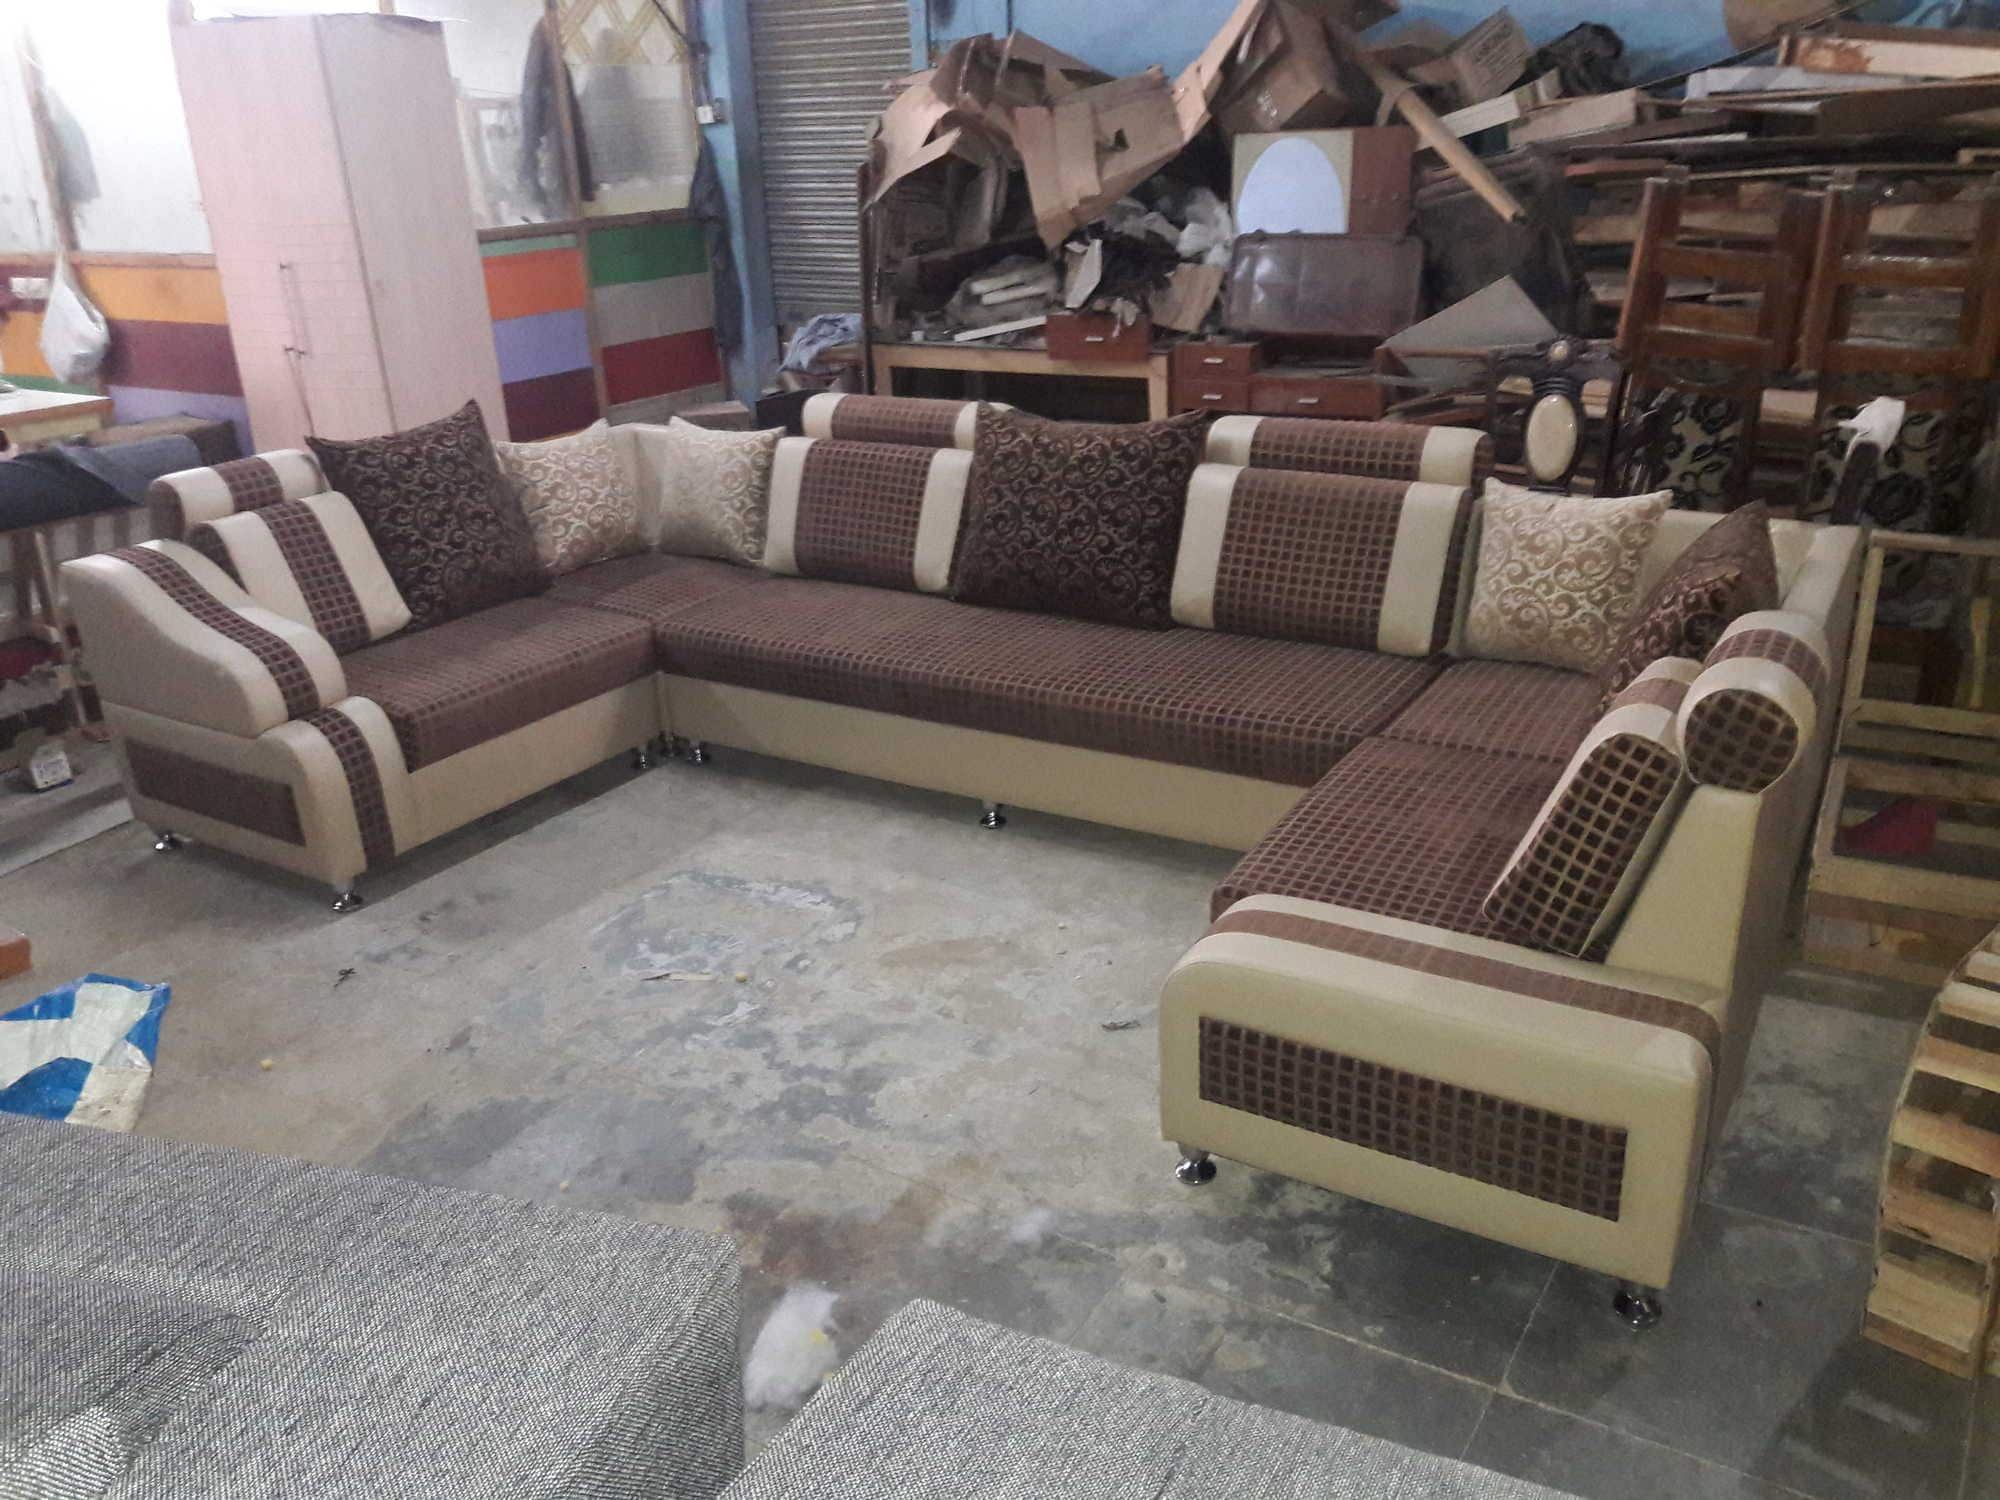 low priced d2cbb 4e8d7 Top 50 Second Hand Furniture Dealers in Mysore - Best Used ...